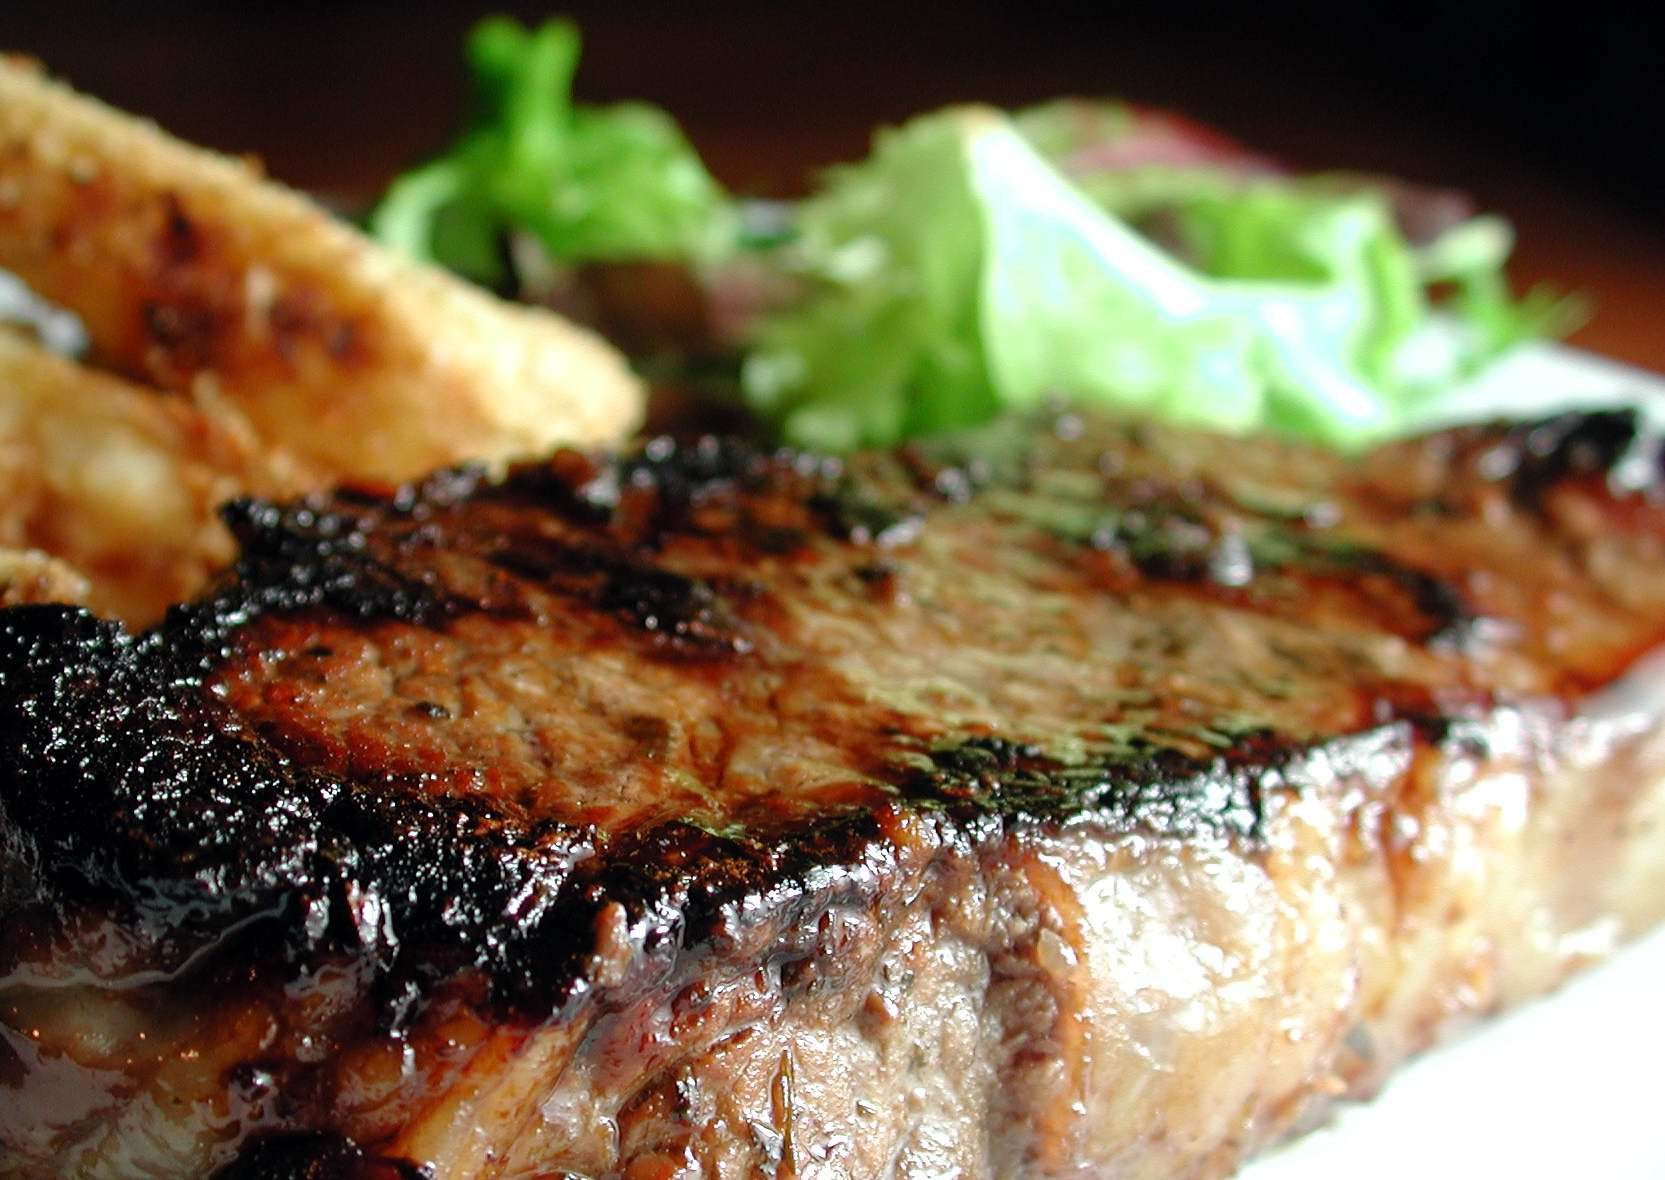 Marinade for Steak (Porterhouse, Sirloin or Any Beef Cuts) Recipe